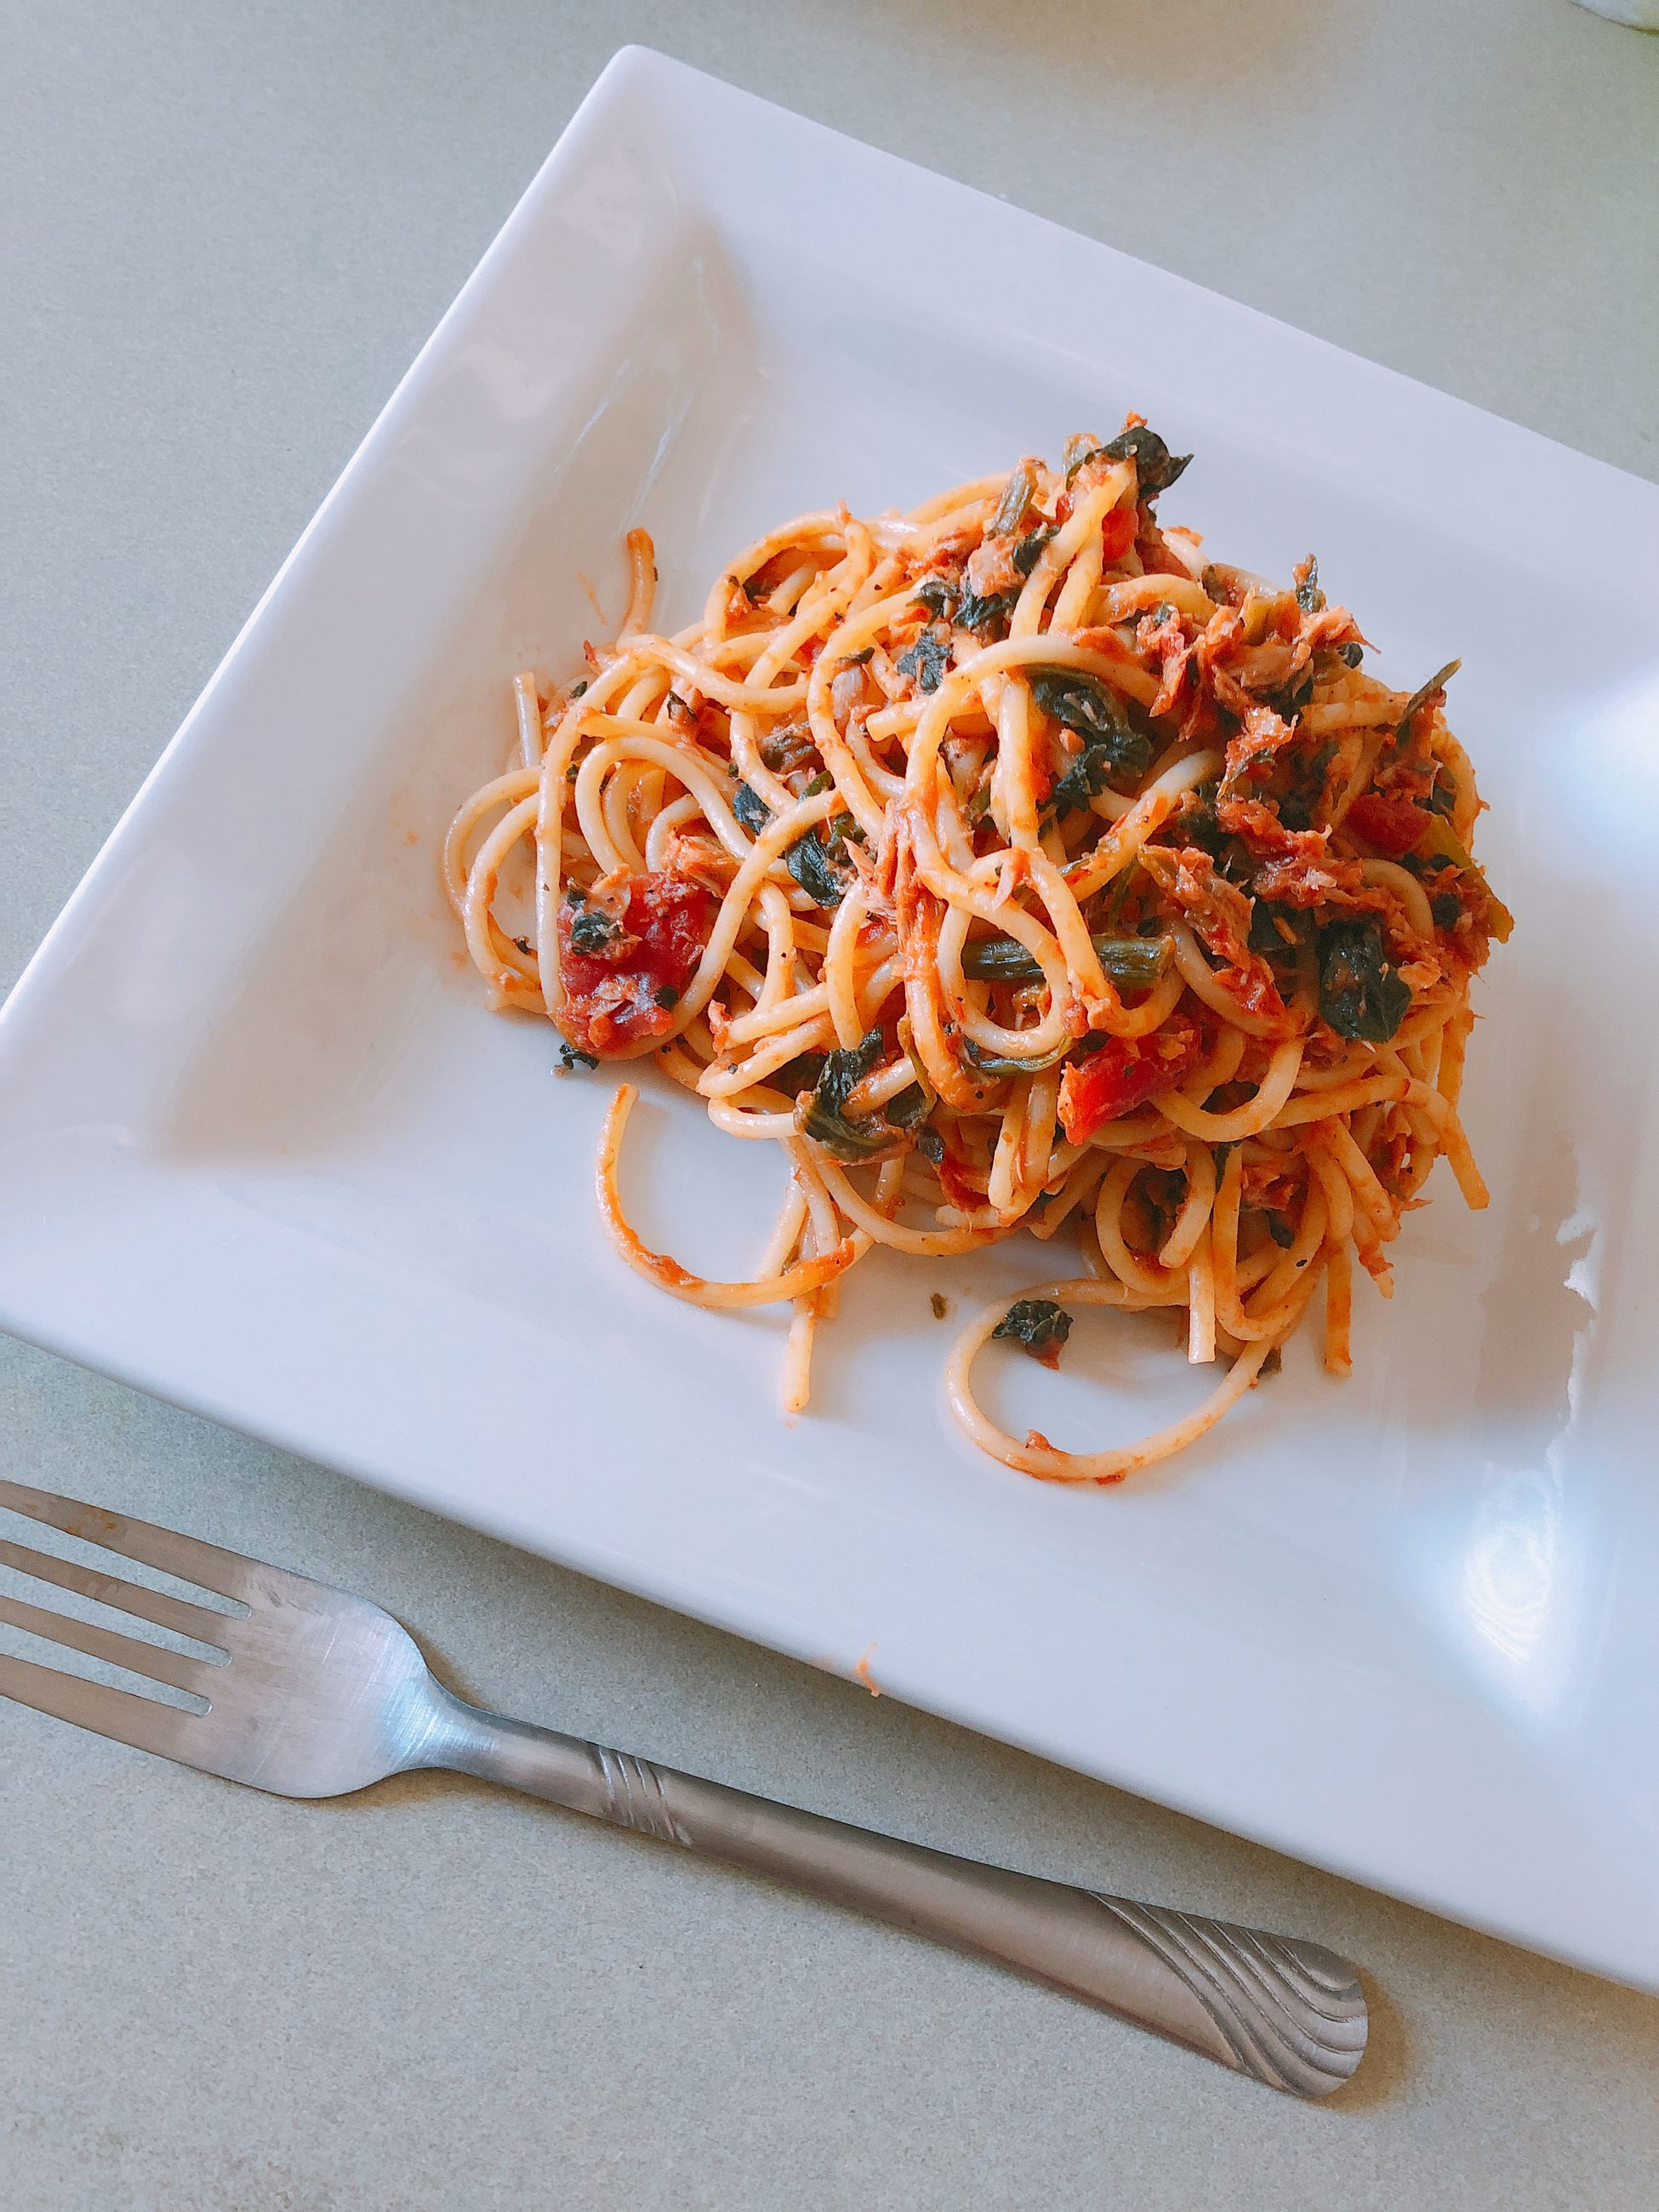 High angle view of spaghetti in plate